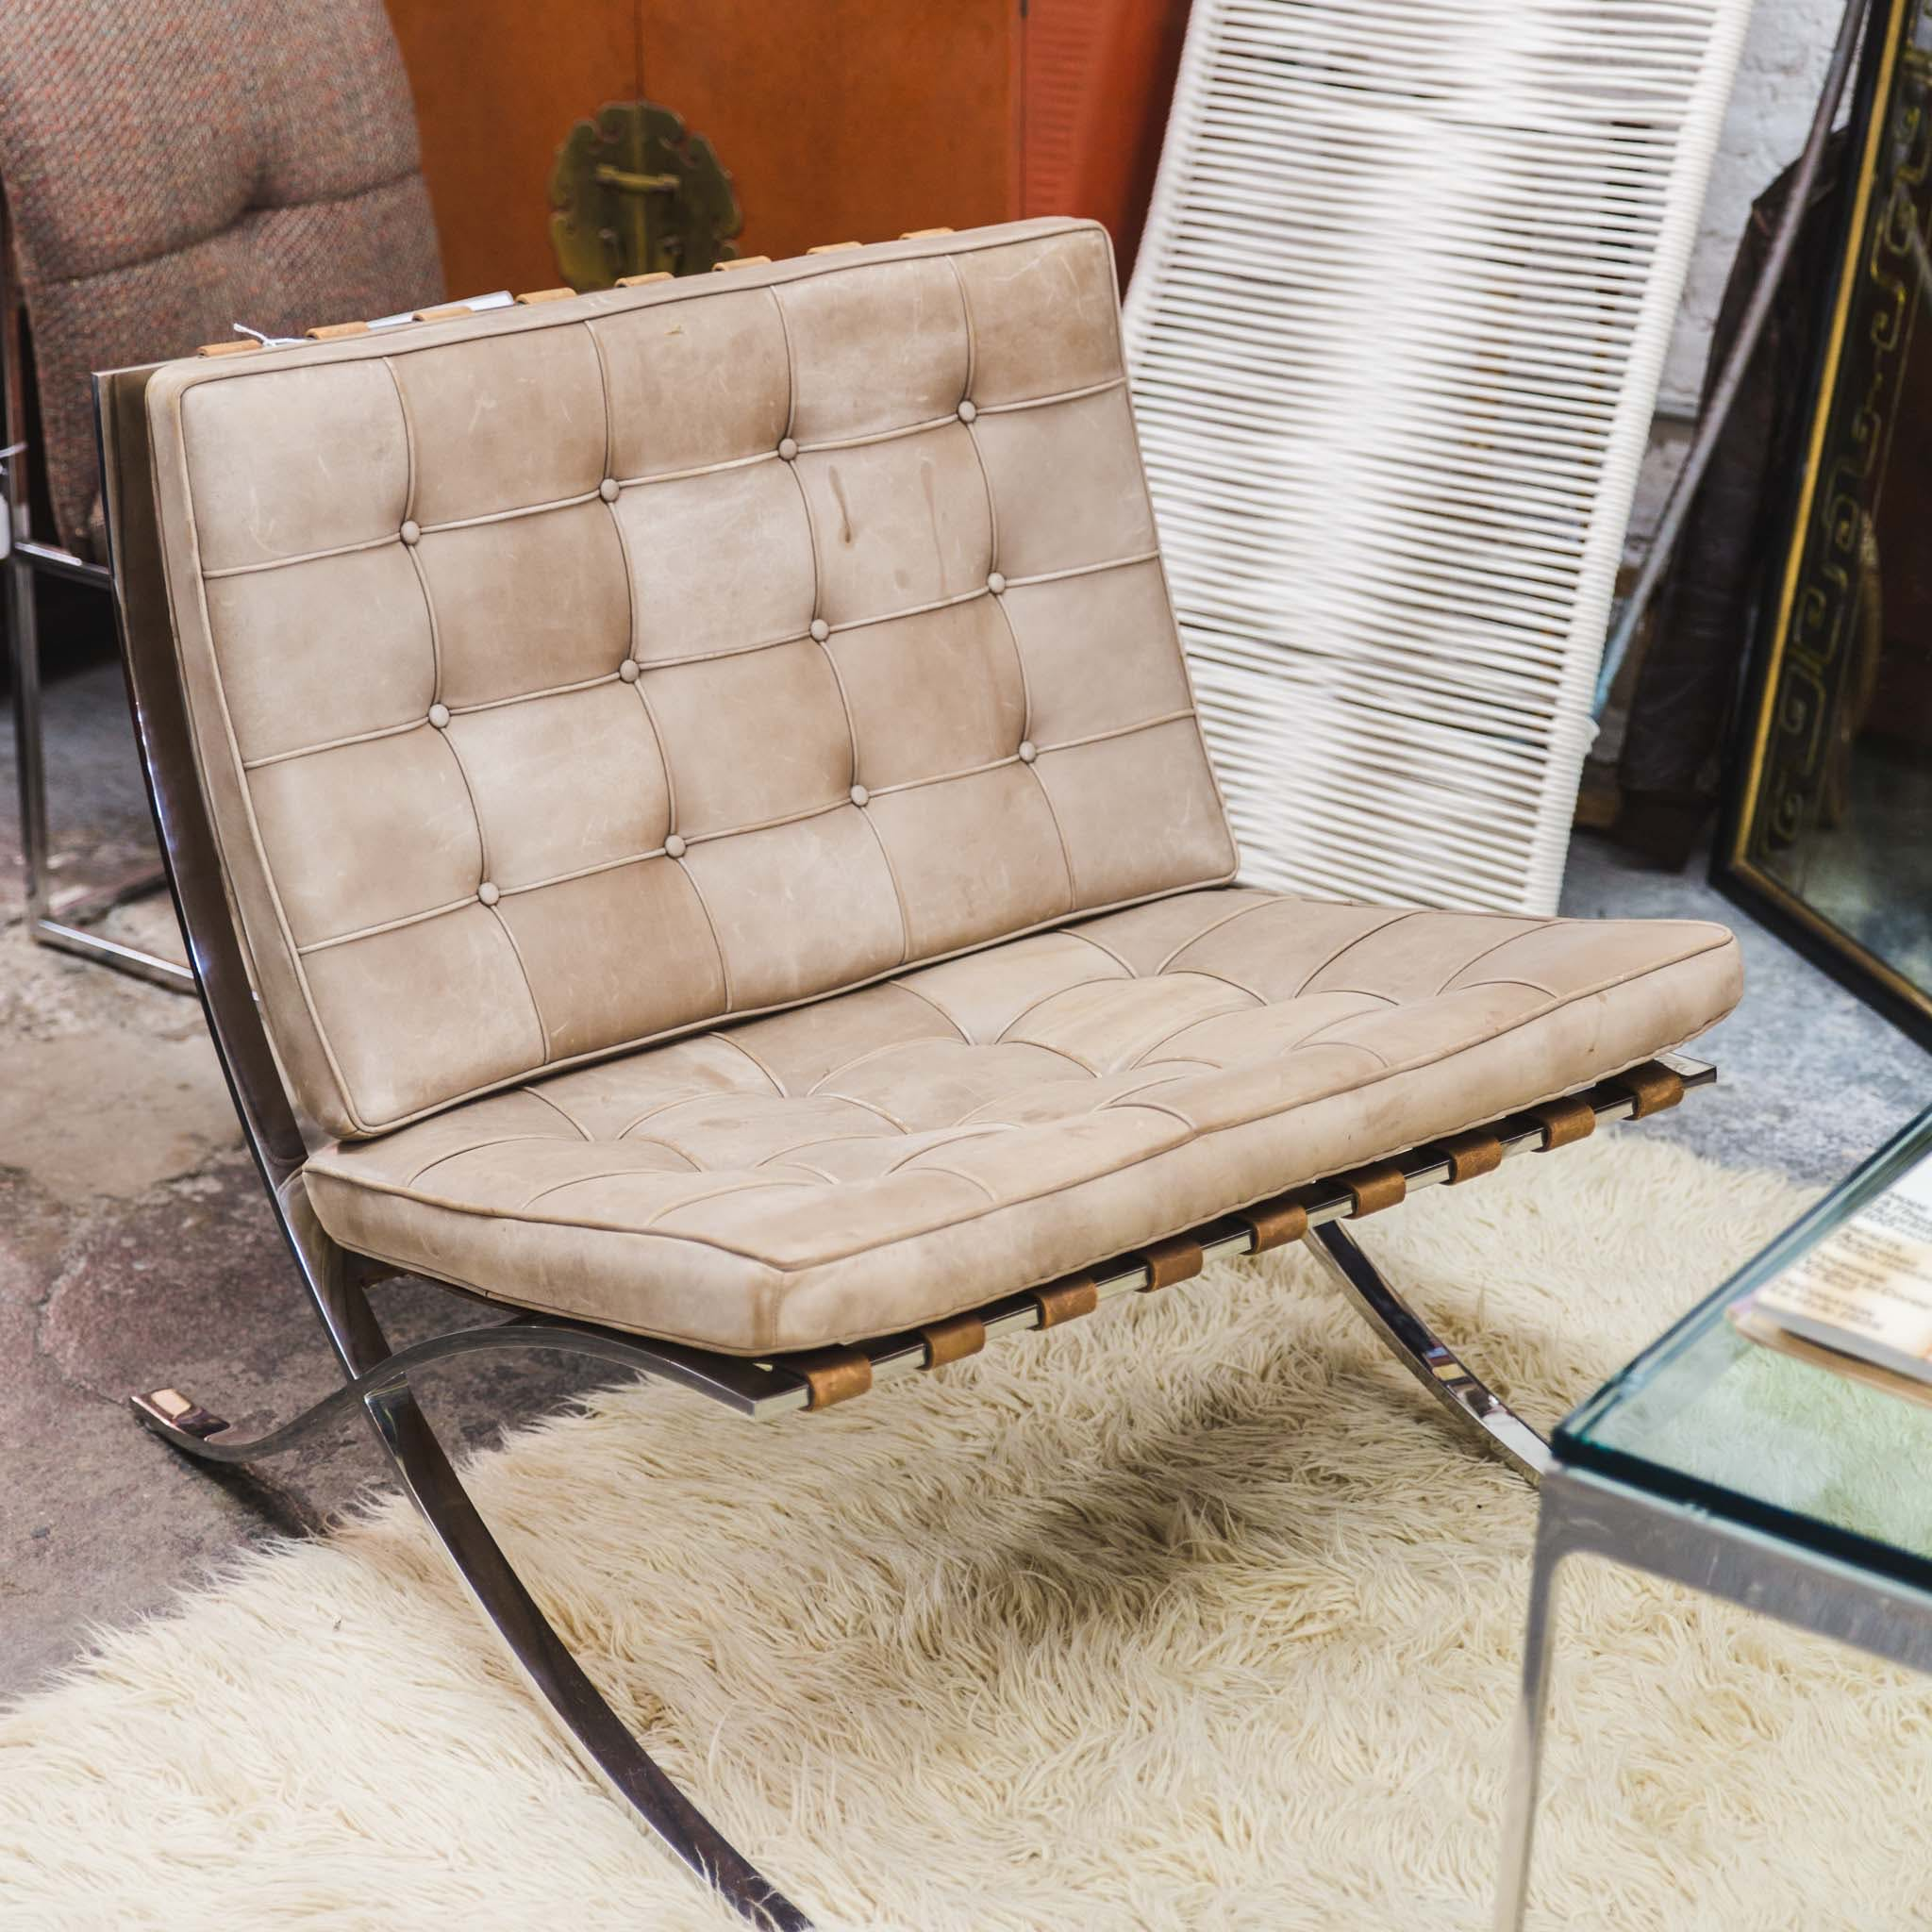 Vintage Barcelona Chair By Ludwig Mies Van Der Rohe, Knoll (Pair Available)